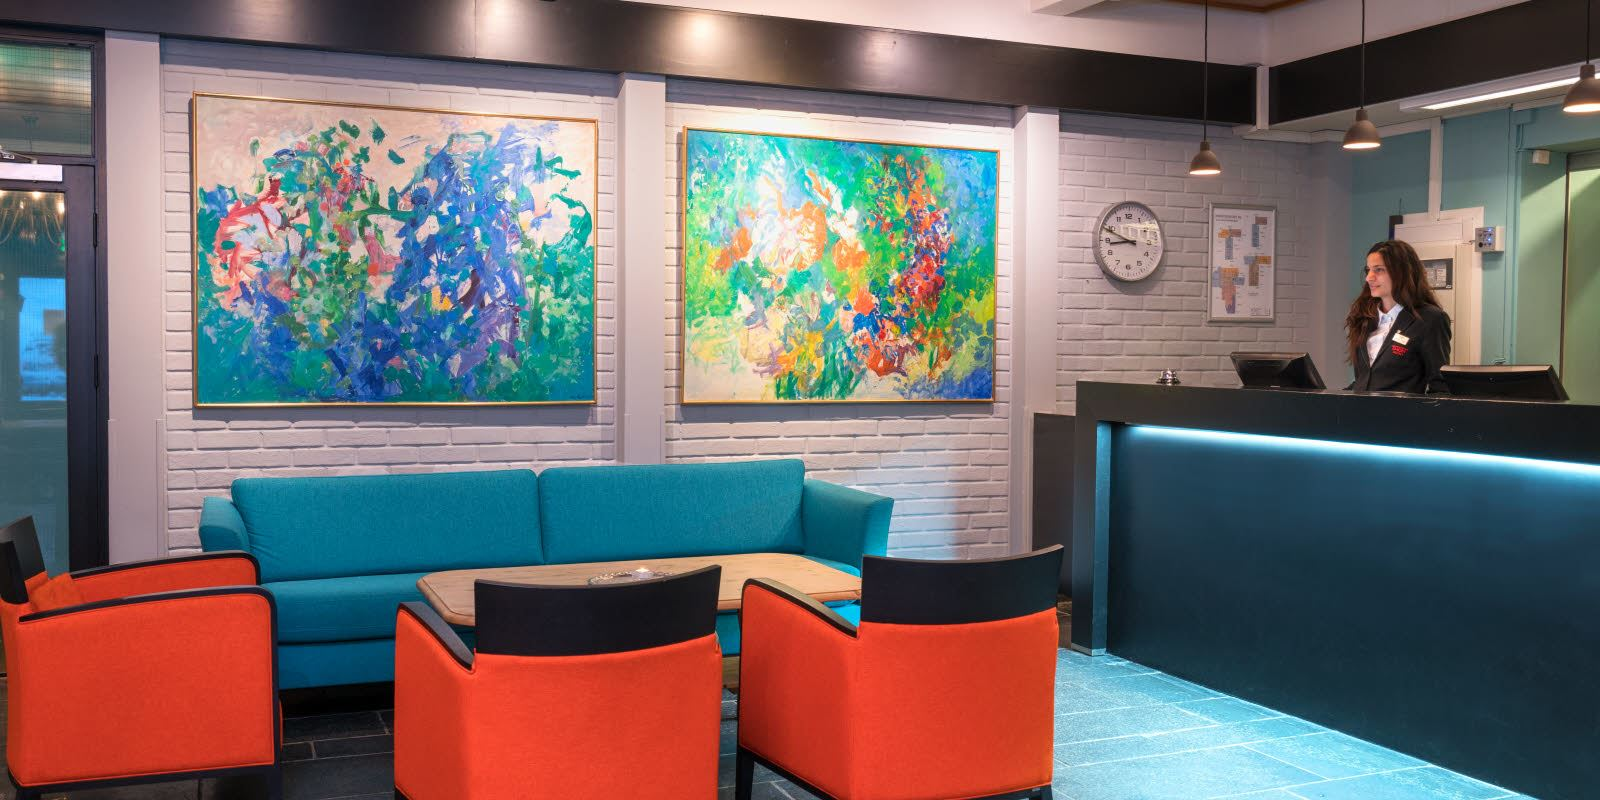 Staffed reception with sofa and seating areas and large abstract images on the wall with soft lighting at Thon Hotel Skeikampen